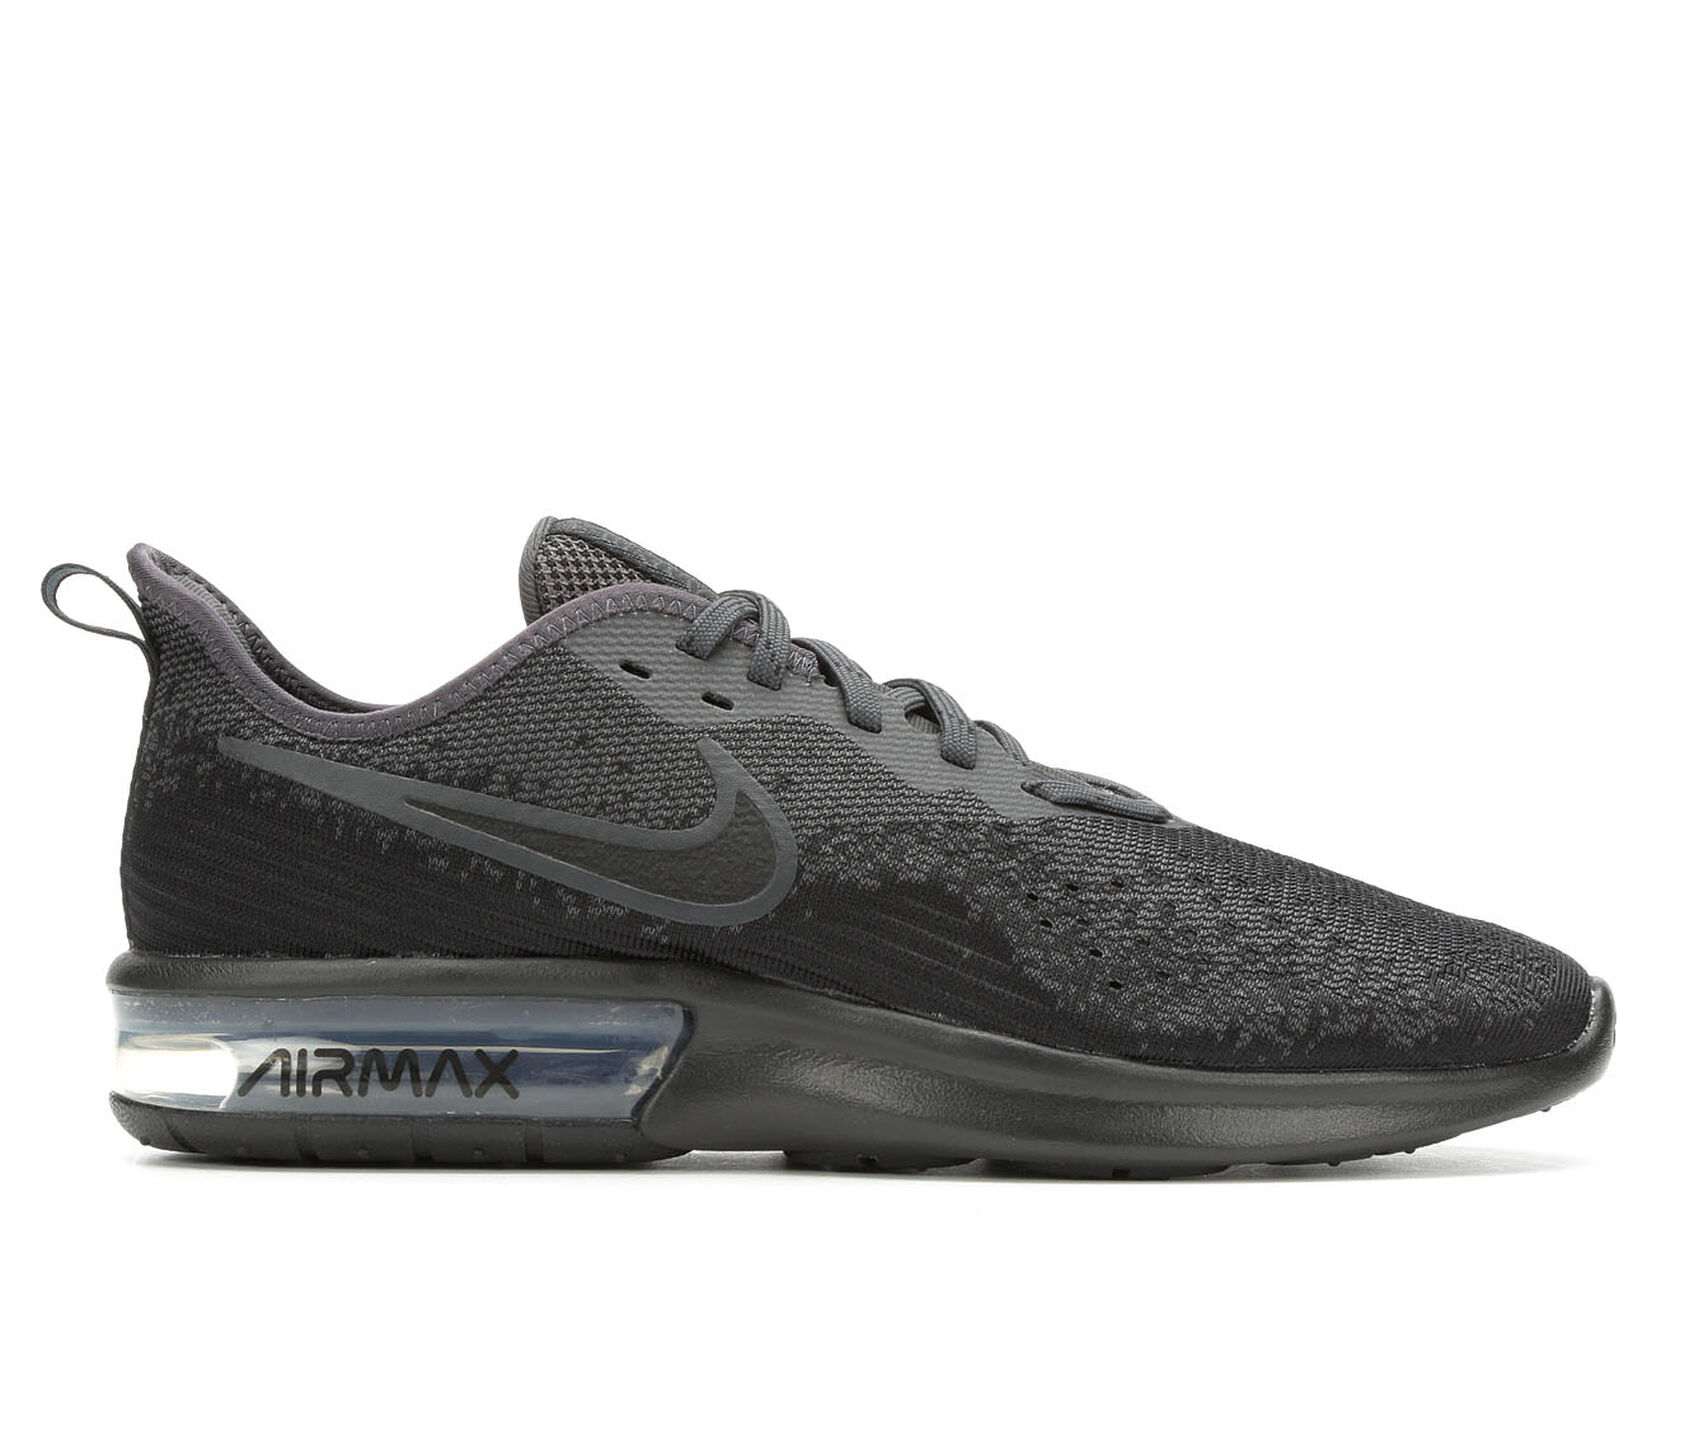 timeless design 38e9c 6f68f ... Nike Air Max Sequent 4 Running Shoes. Previous